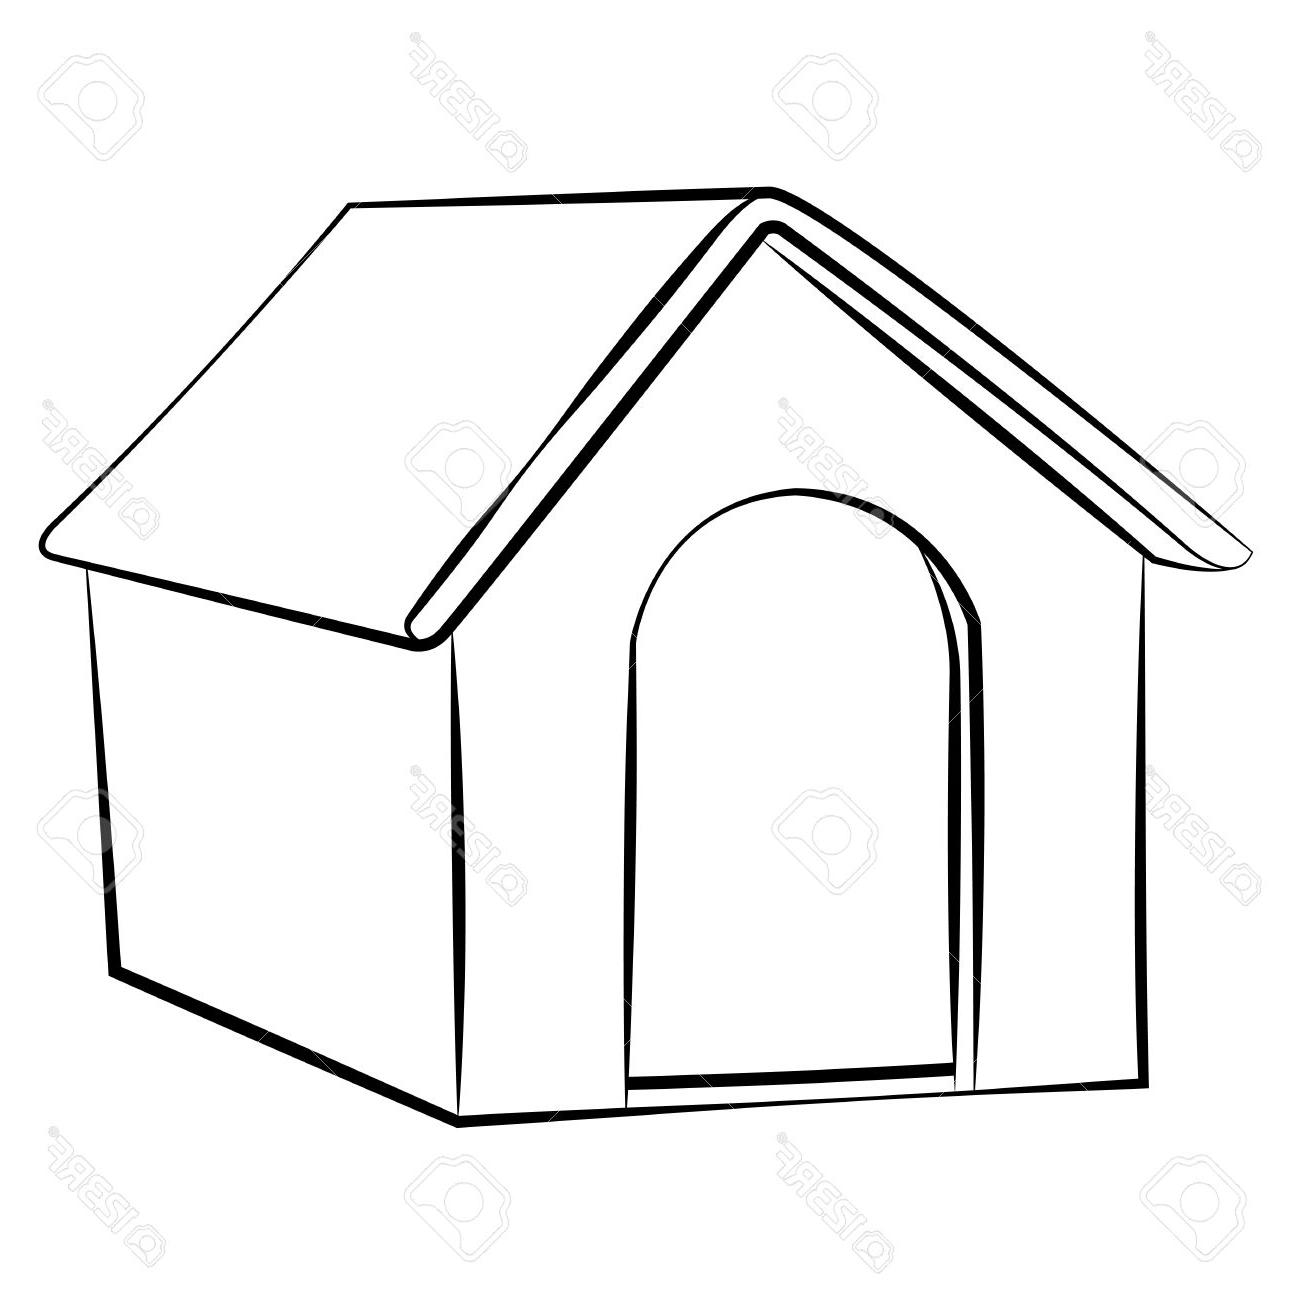 Outline Of A House